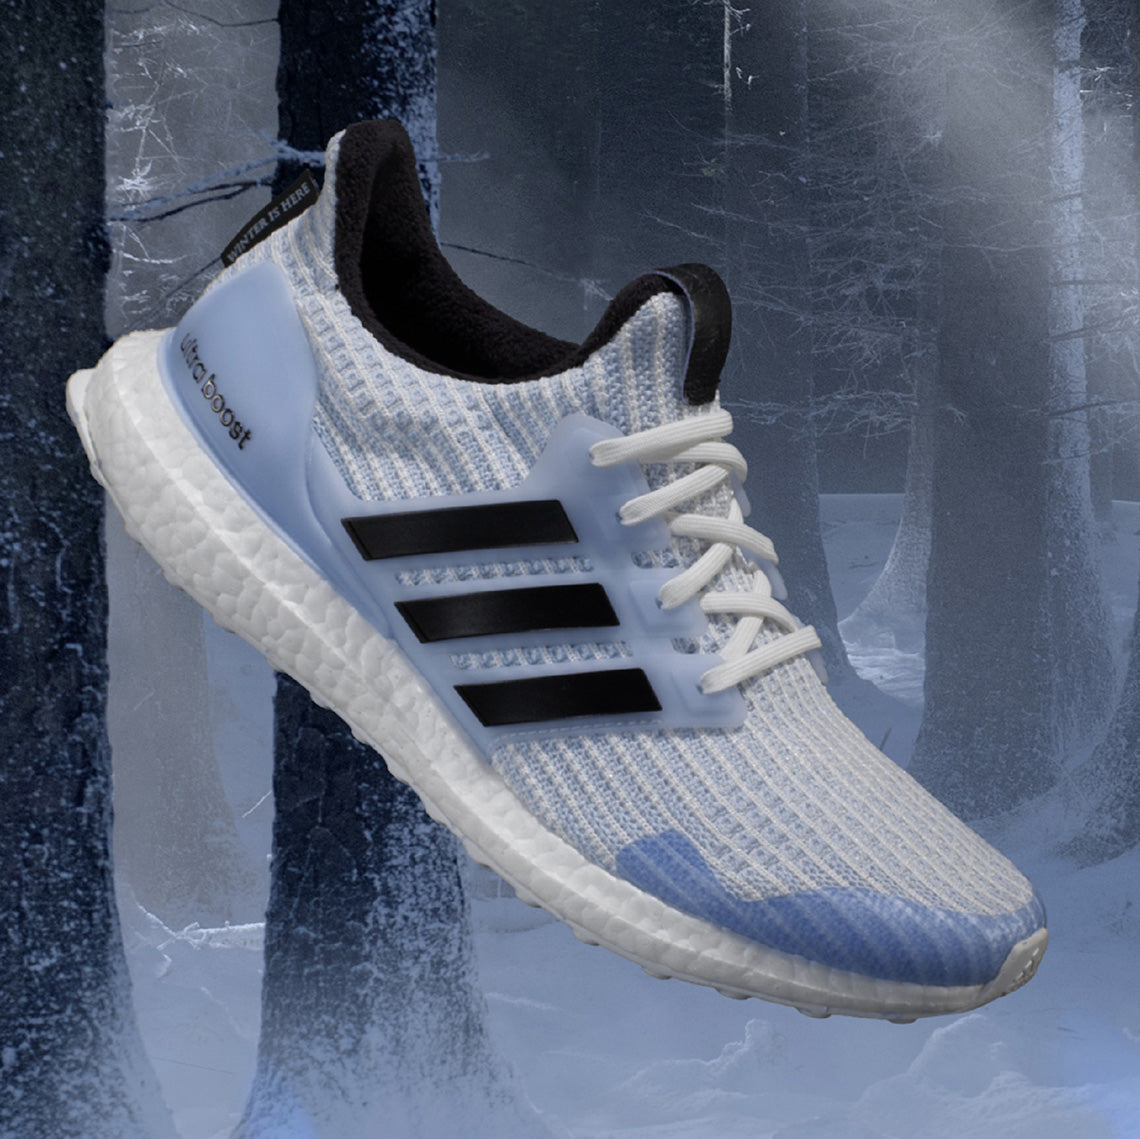 c7f4c8fb3aa Singapore Release  Game of Thrones x Adidas Ultra Boost  White Walkers -  Sneakest